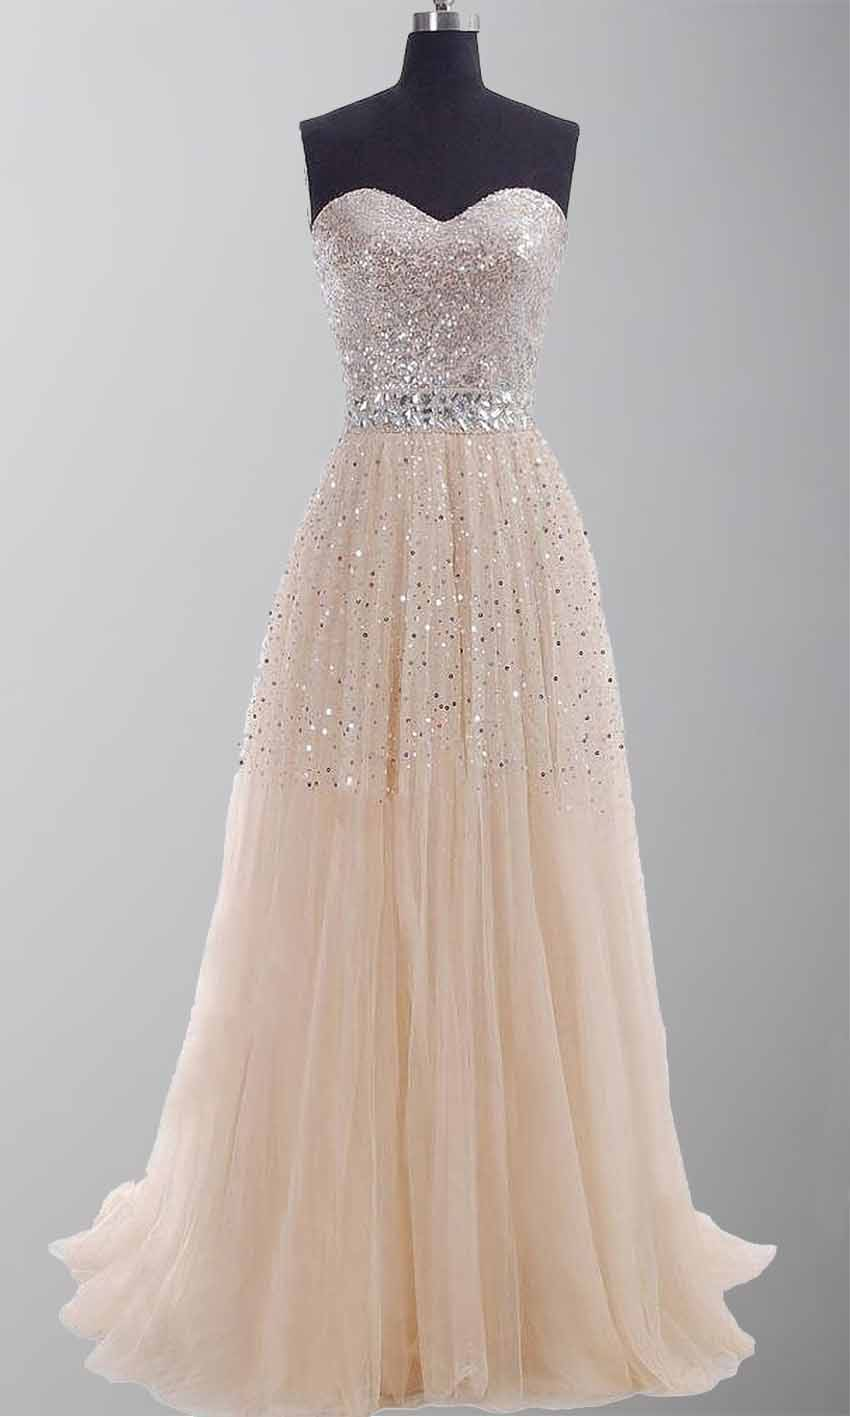 Champagne sequin sweetheart long prom gowns ksp254 ksp254 champagne sequin sweetheart long prom gowns ksp254 ksp254 9900 cheap prom dresses uk bridesmaid dresses 2014 prom evening dresses ombrellifo Images